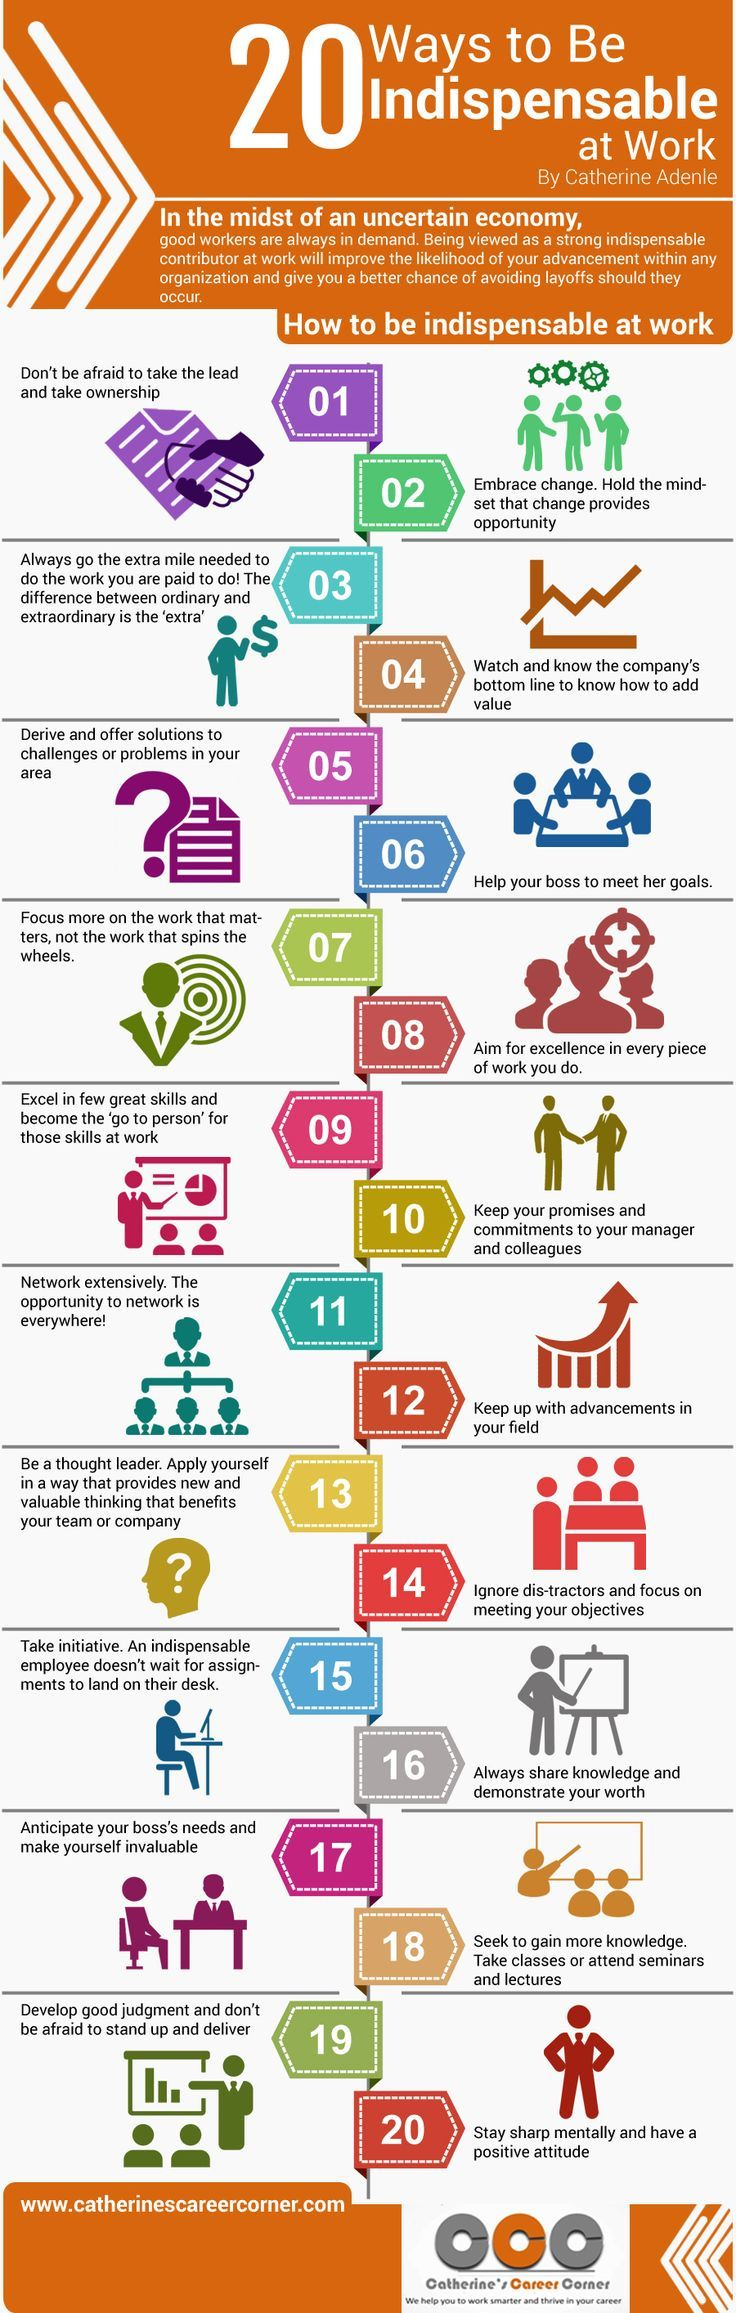 20 Ways To Be Indispensable At Work (Infographic